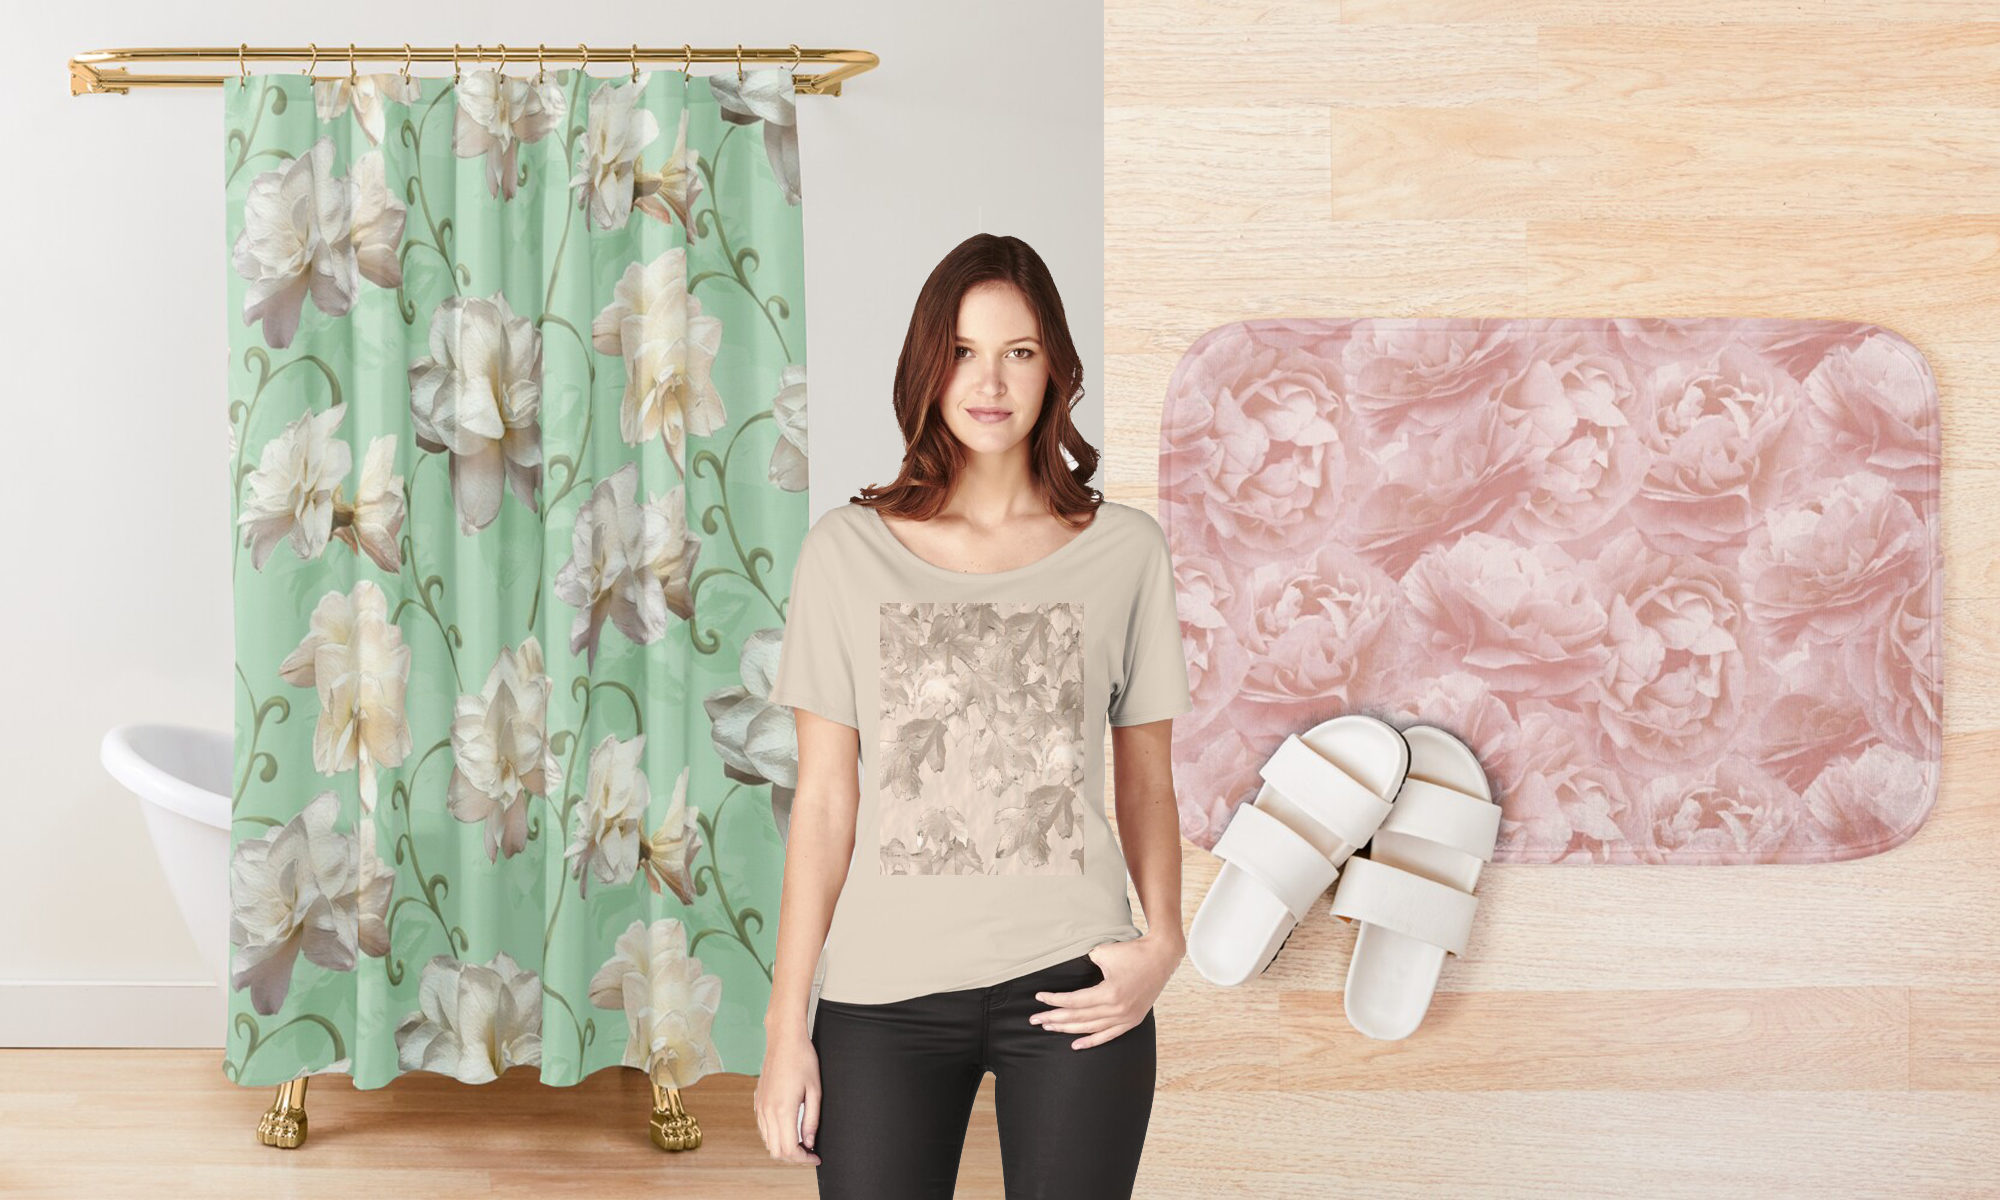 Shower crtain, T-shirt and bathroom mat with flower motives.